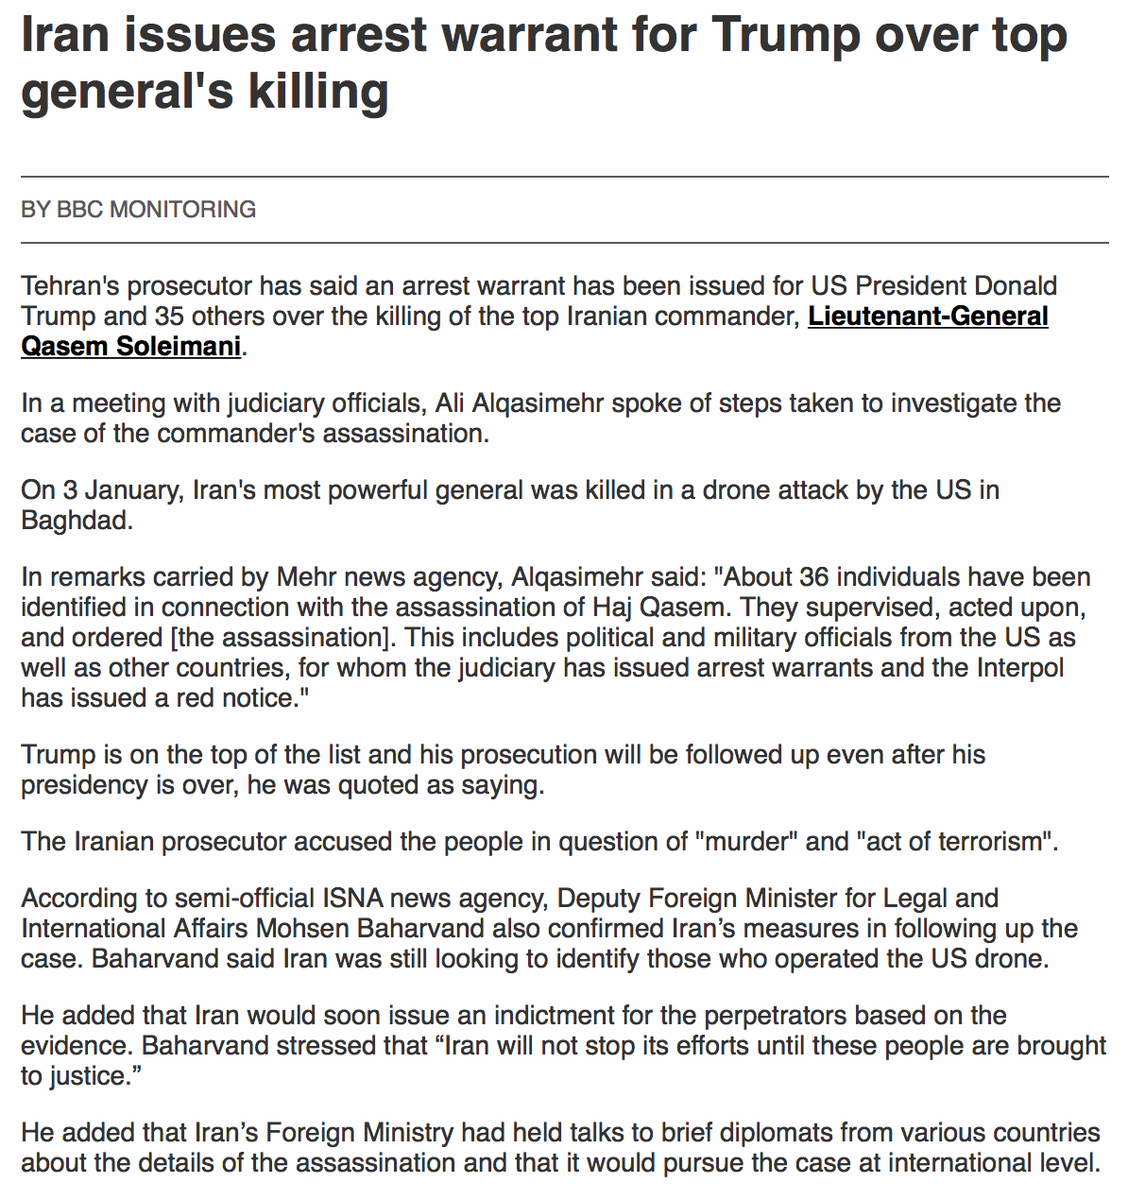 Tehran's prosecutor has said an arrest warrant has been issued for President Donald Trump and 35 others over the killing of Lt-Gen Qasem Soleimani in January, Mehr news agency reports https://t.co/oTcpw23uXU